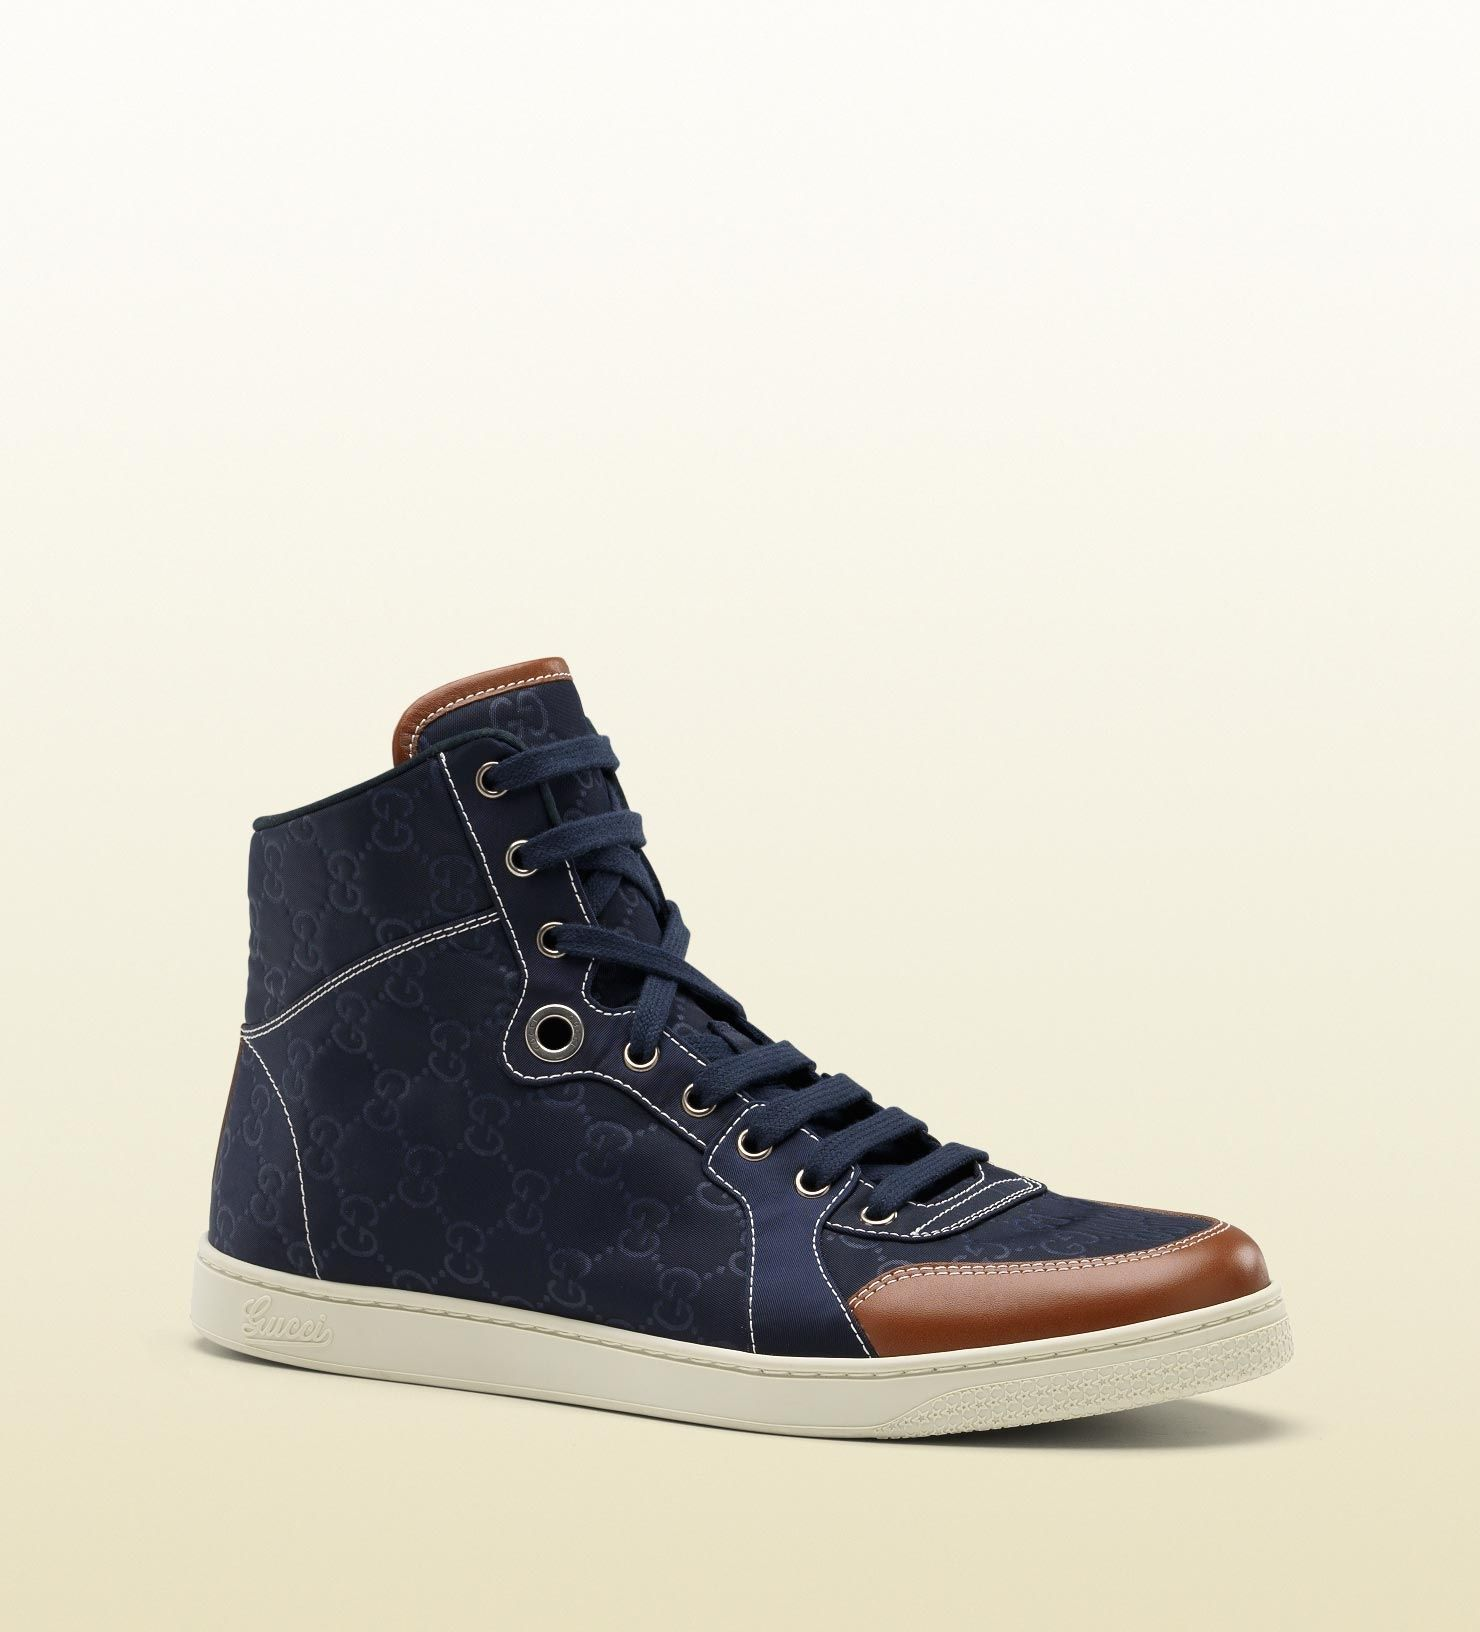 gucci man shoes price